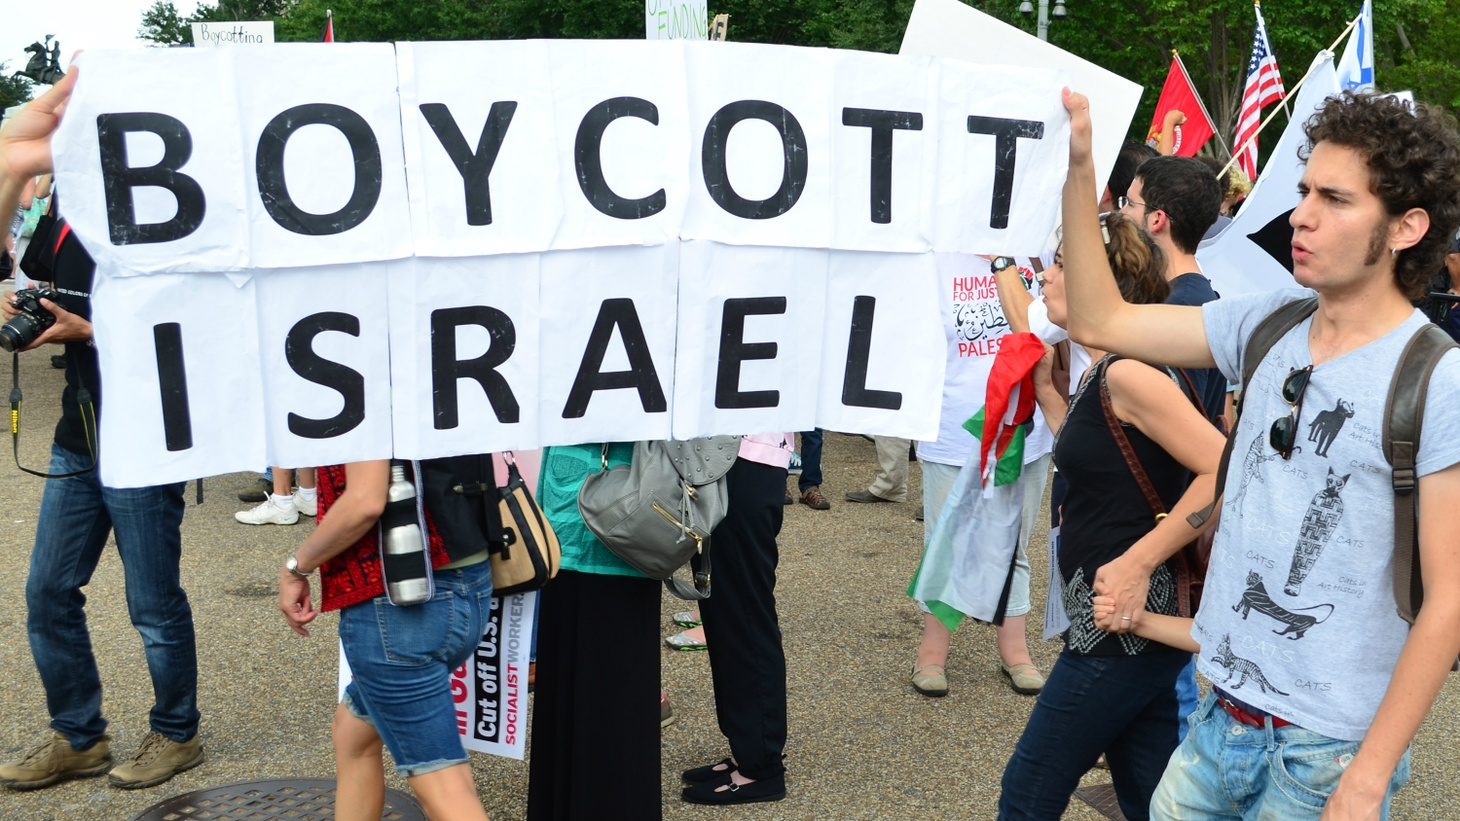 Heated clashes over Israeli policies toward the Palestinians have led to accusations of bigotry at American colleges, including campuses of the University of California. Now the Regents are being asked to adopt the US State Department's definition of anti-Semitism.  Is it a fair standard for discipline or a limitation on free speech? We hear a debate.